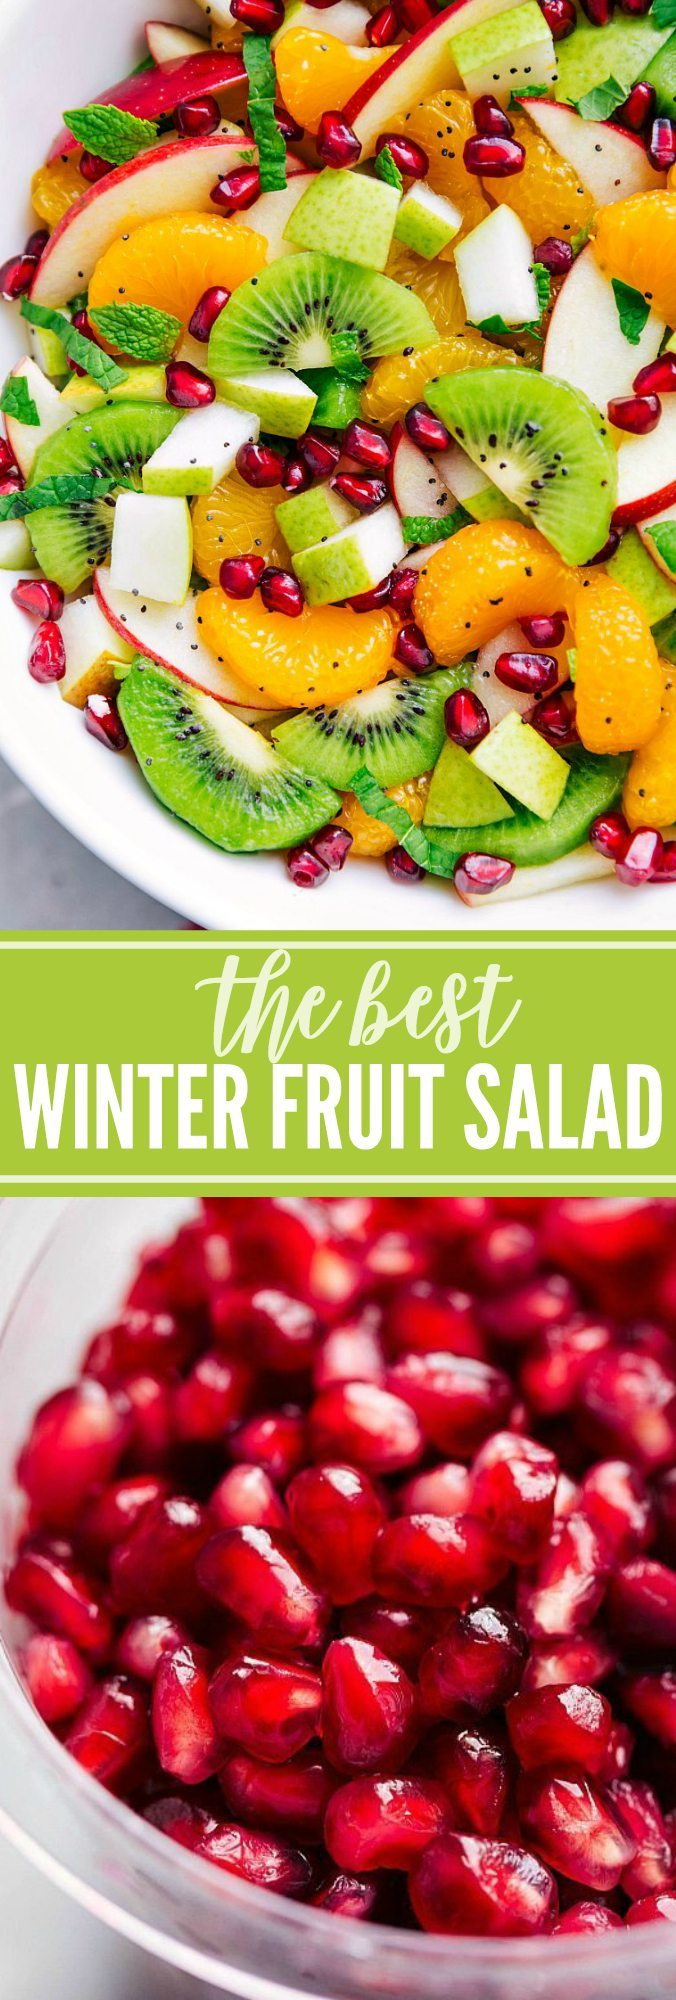 The ultimate BEST EVER Winter Fruit Salad! A super easy, quick, and healthy salad! via chelseasmessyapron.com | #christmas #salad #holiday #winter #thanksgiving #fruit #healthy #quick #kidfriendly #easy #apple #pomegranate #pear #kiwi #mint